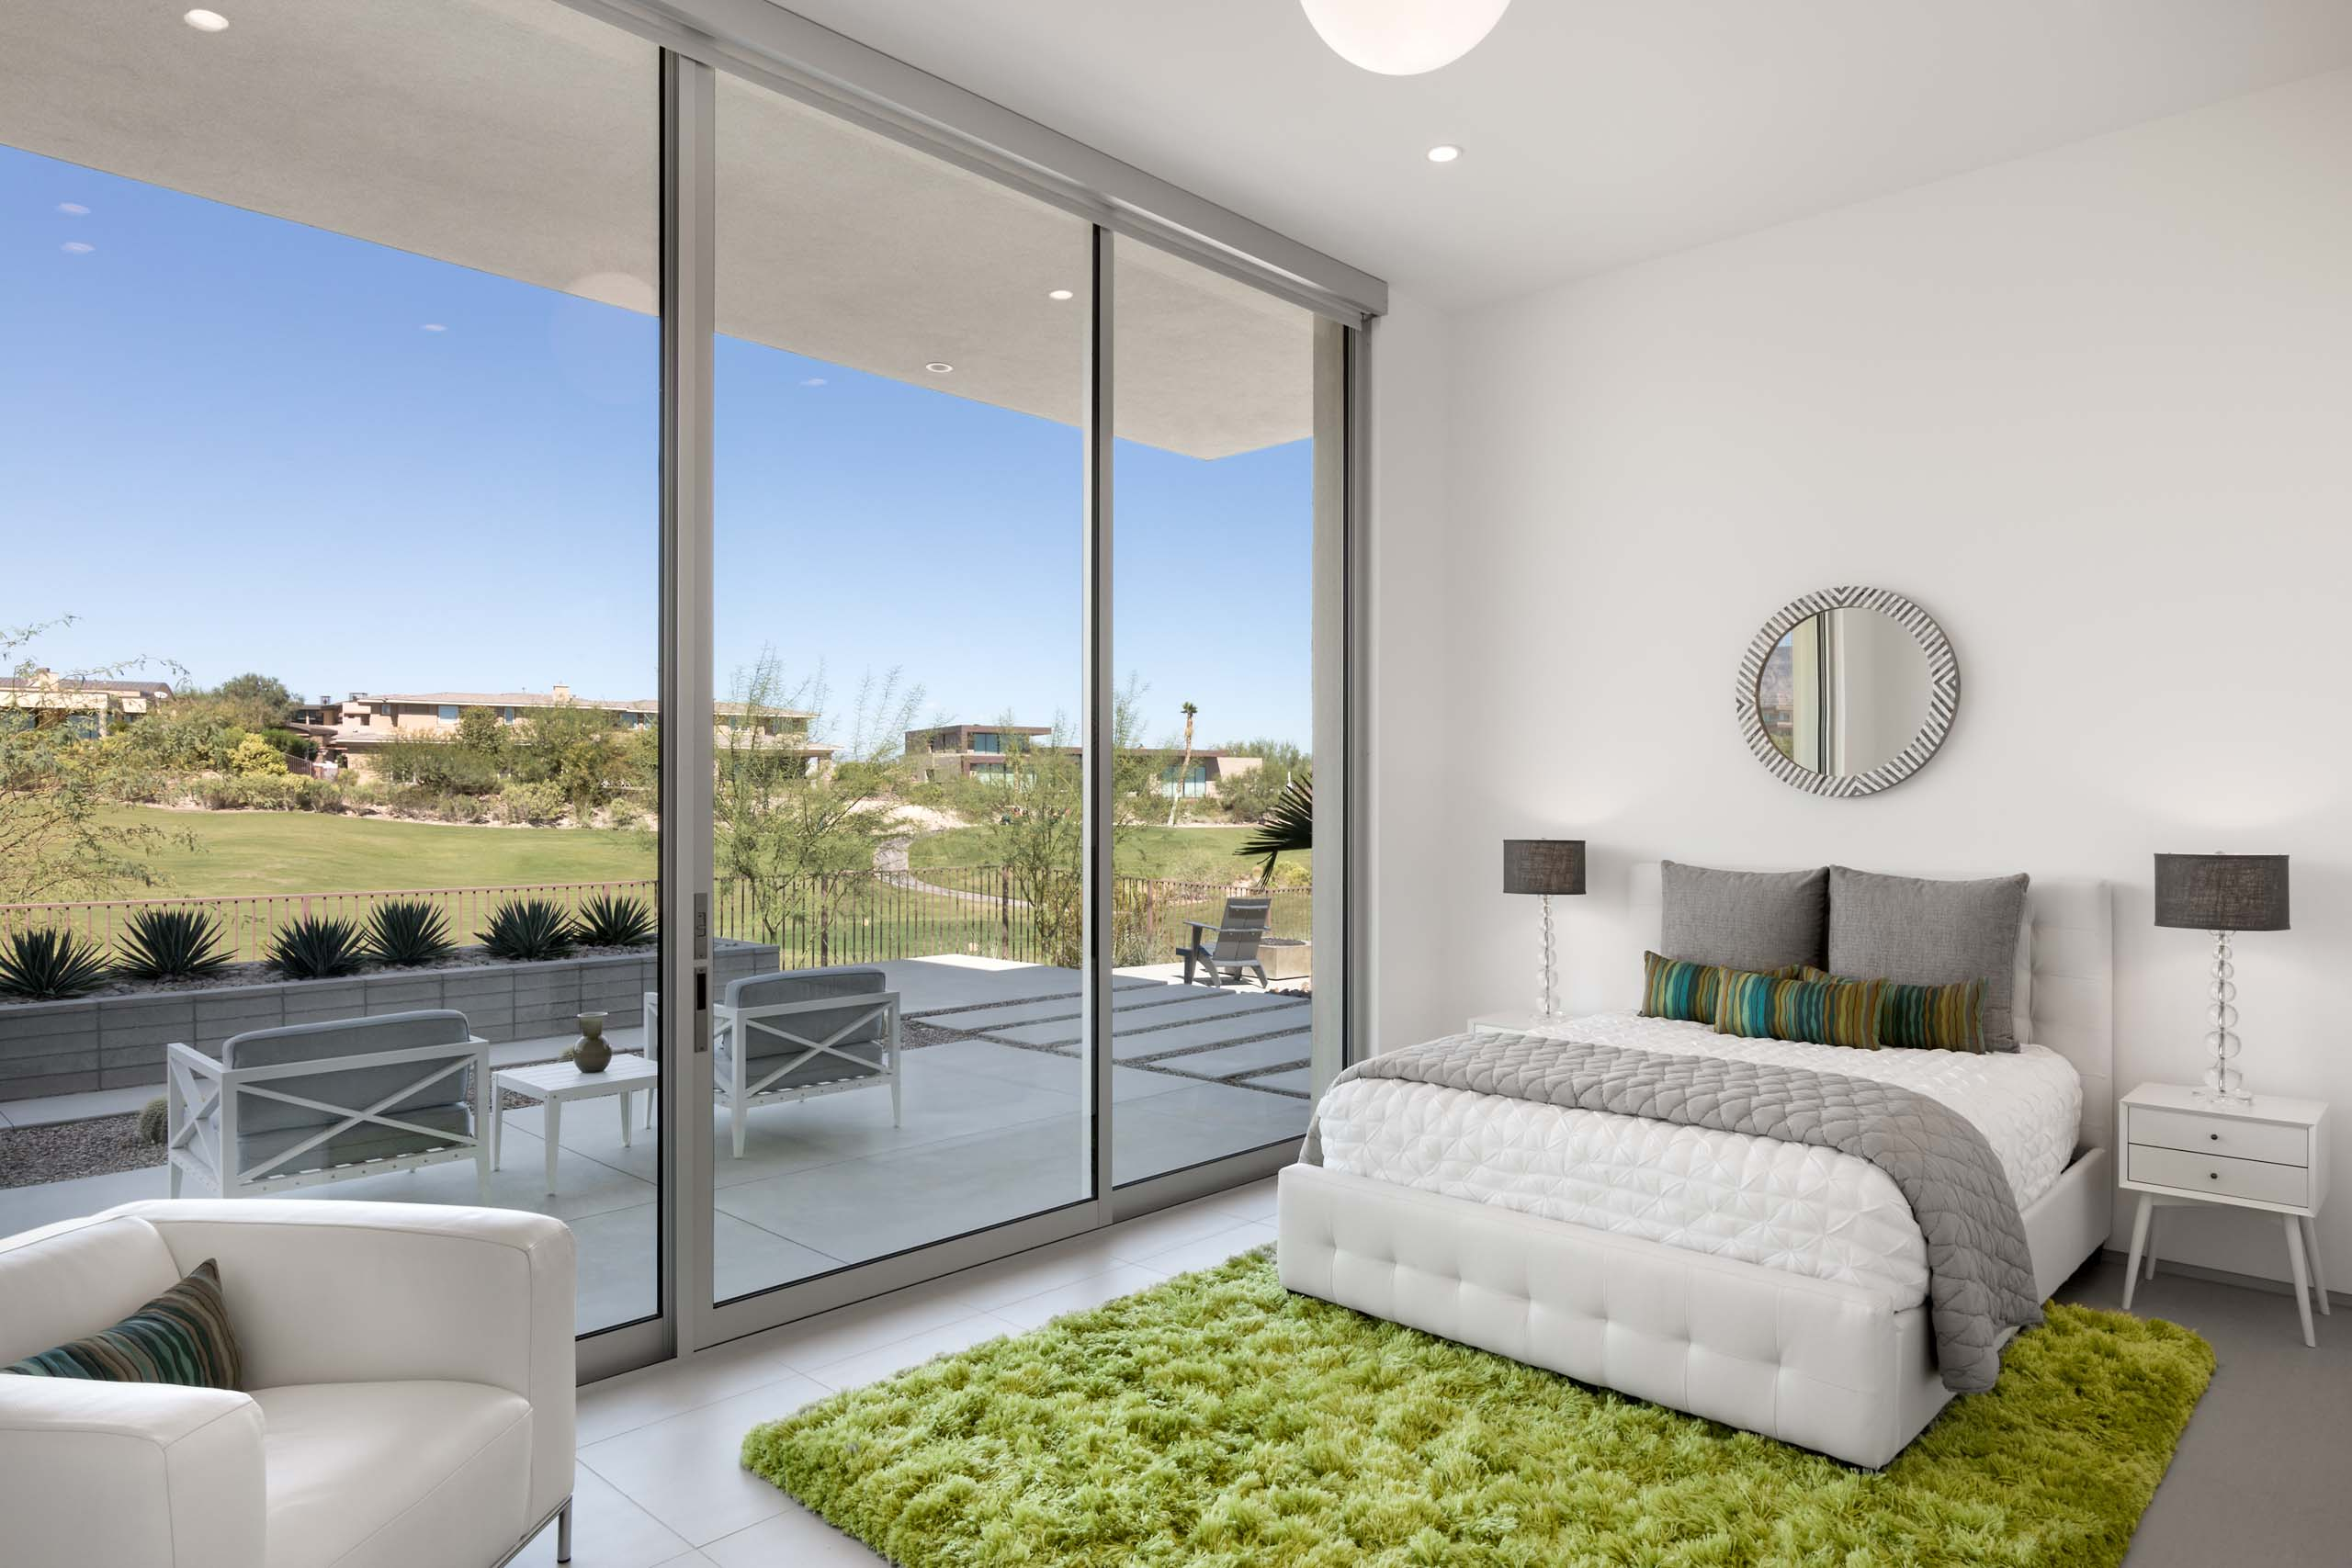 Each of the bedrooms features a Series 600 Multi-Slide Door.